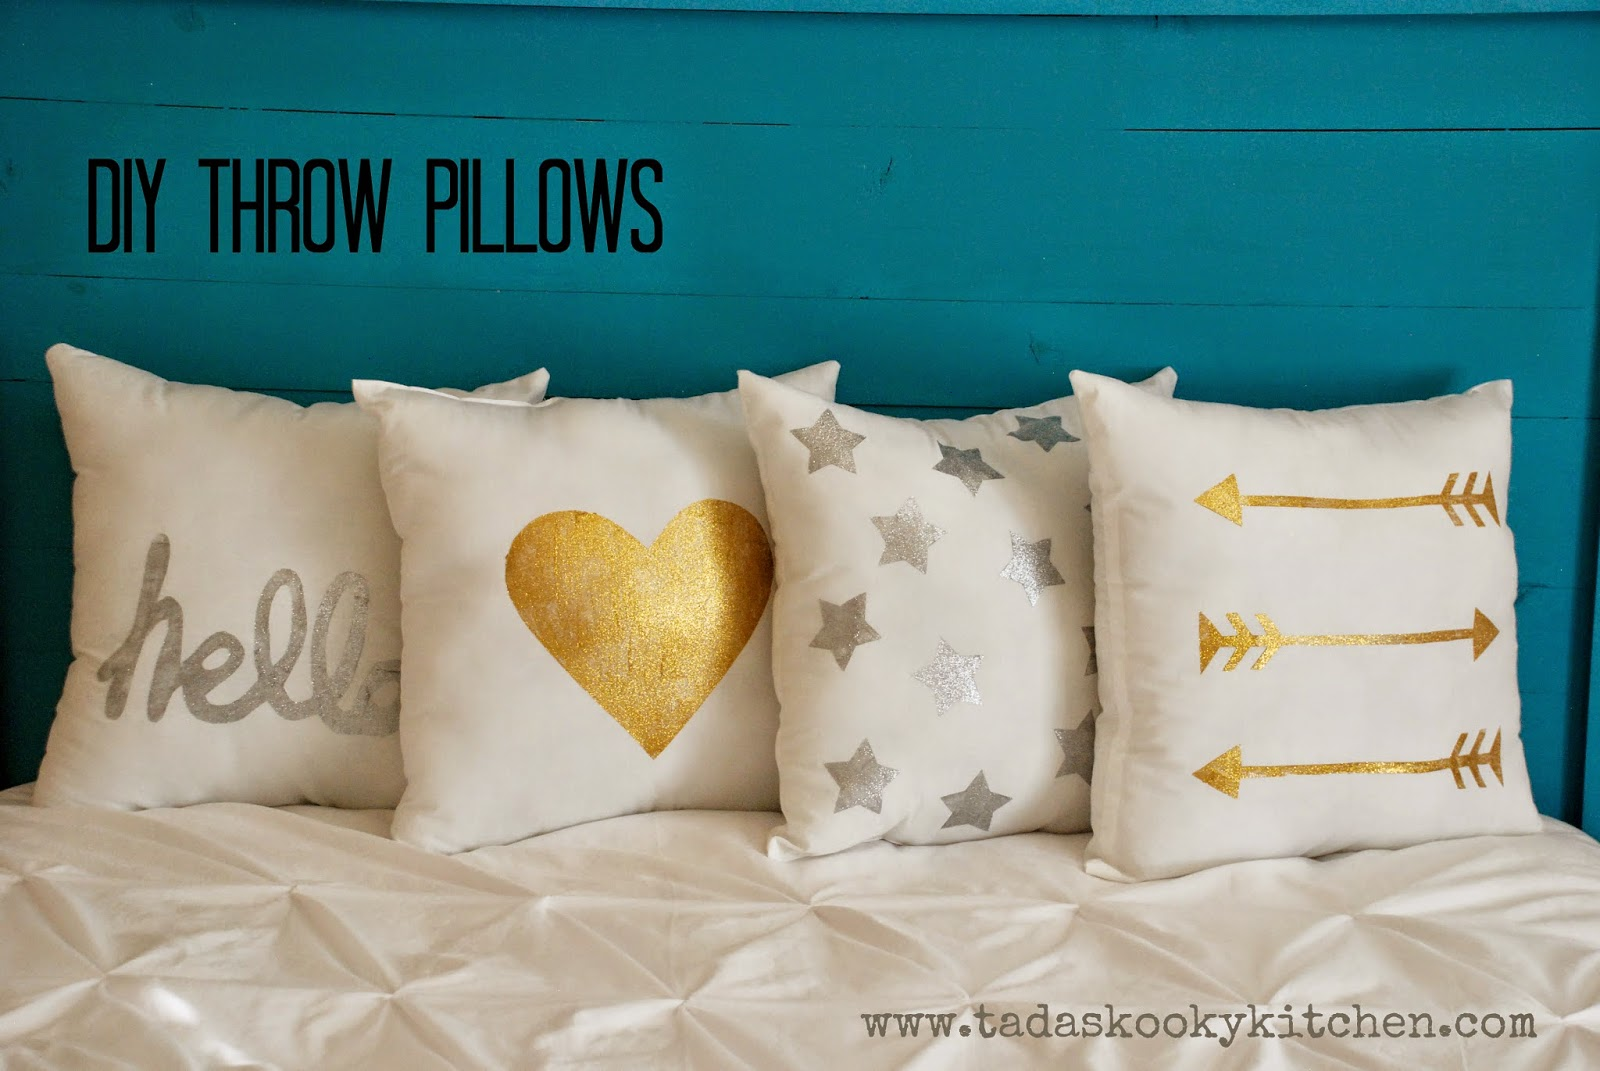 Tada s Kooky Kitchen: DIY Throw Pillows